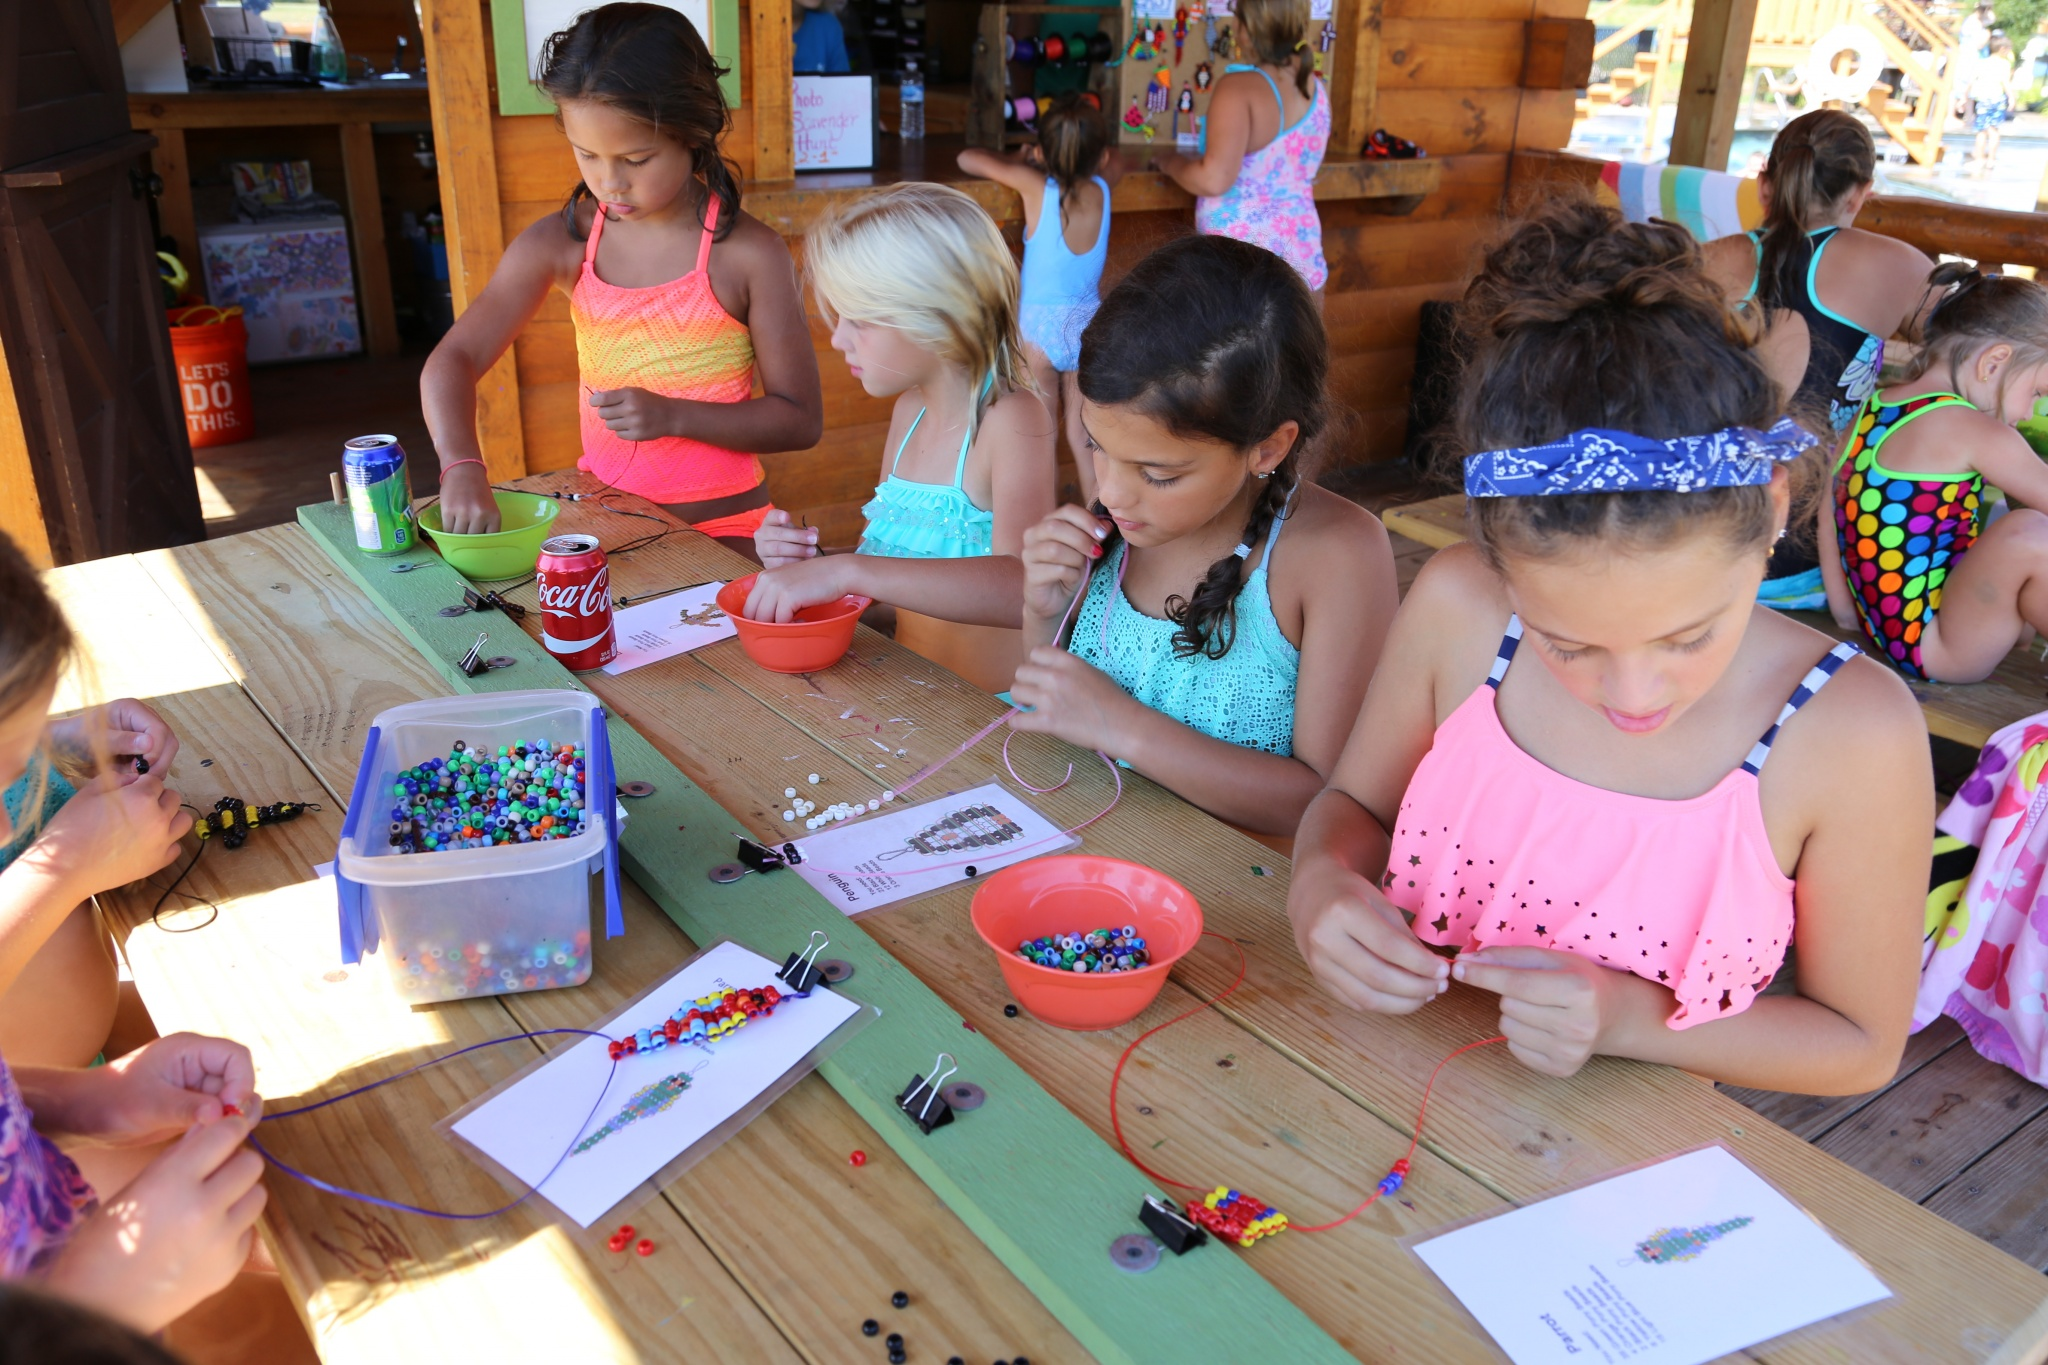 Young girls at an activity table with beads and crafts